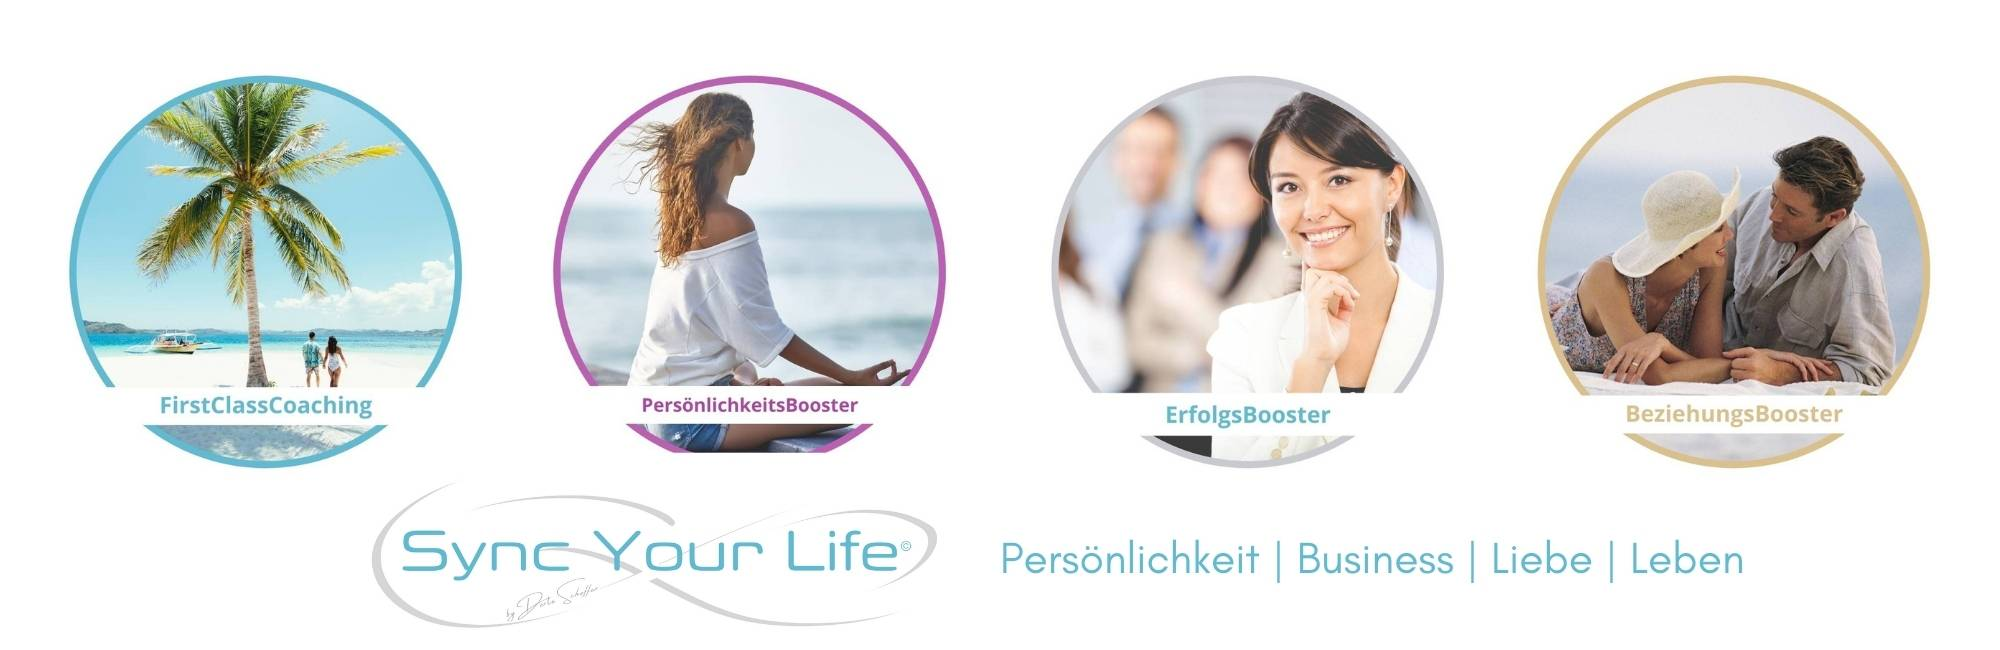 In-Success Coaching und Mentoring in allen Lebensbereichen